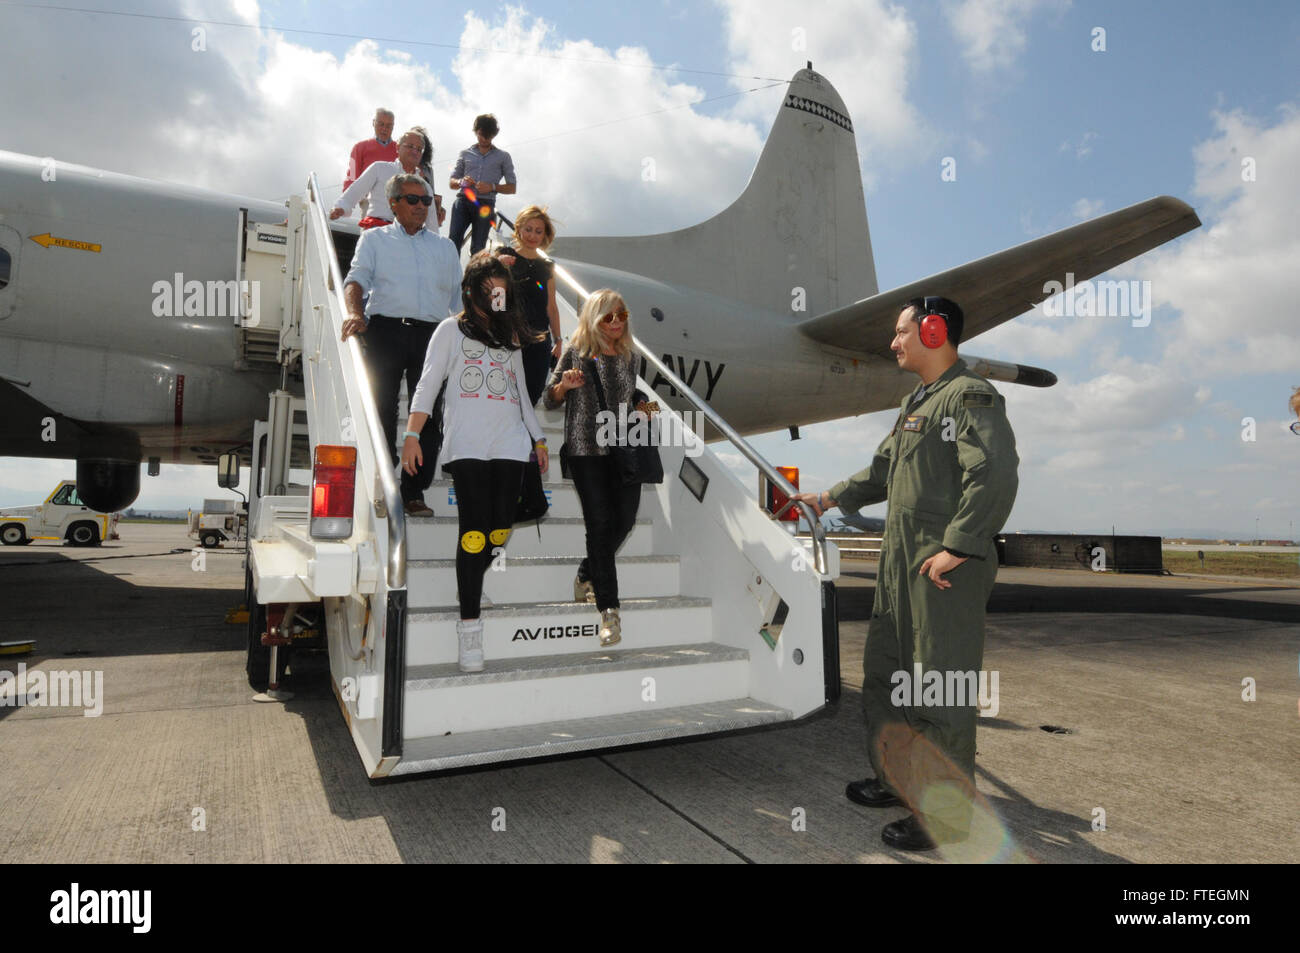 SIGONELLA, Sicily (Oct. 5, 2014) Naval Aircrewmen 2nd Class Isaac Davila helps the local chapter of the International Business Womens' Federation and  their family members as they step off  one of VP-4's P3-C Orion maritime patrol aircraft following a tour. is conducting naval operations in the U.S. 6th Fleet area of operations in support of U.S. national security interests in Europe. Stock Photo